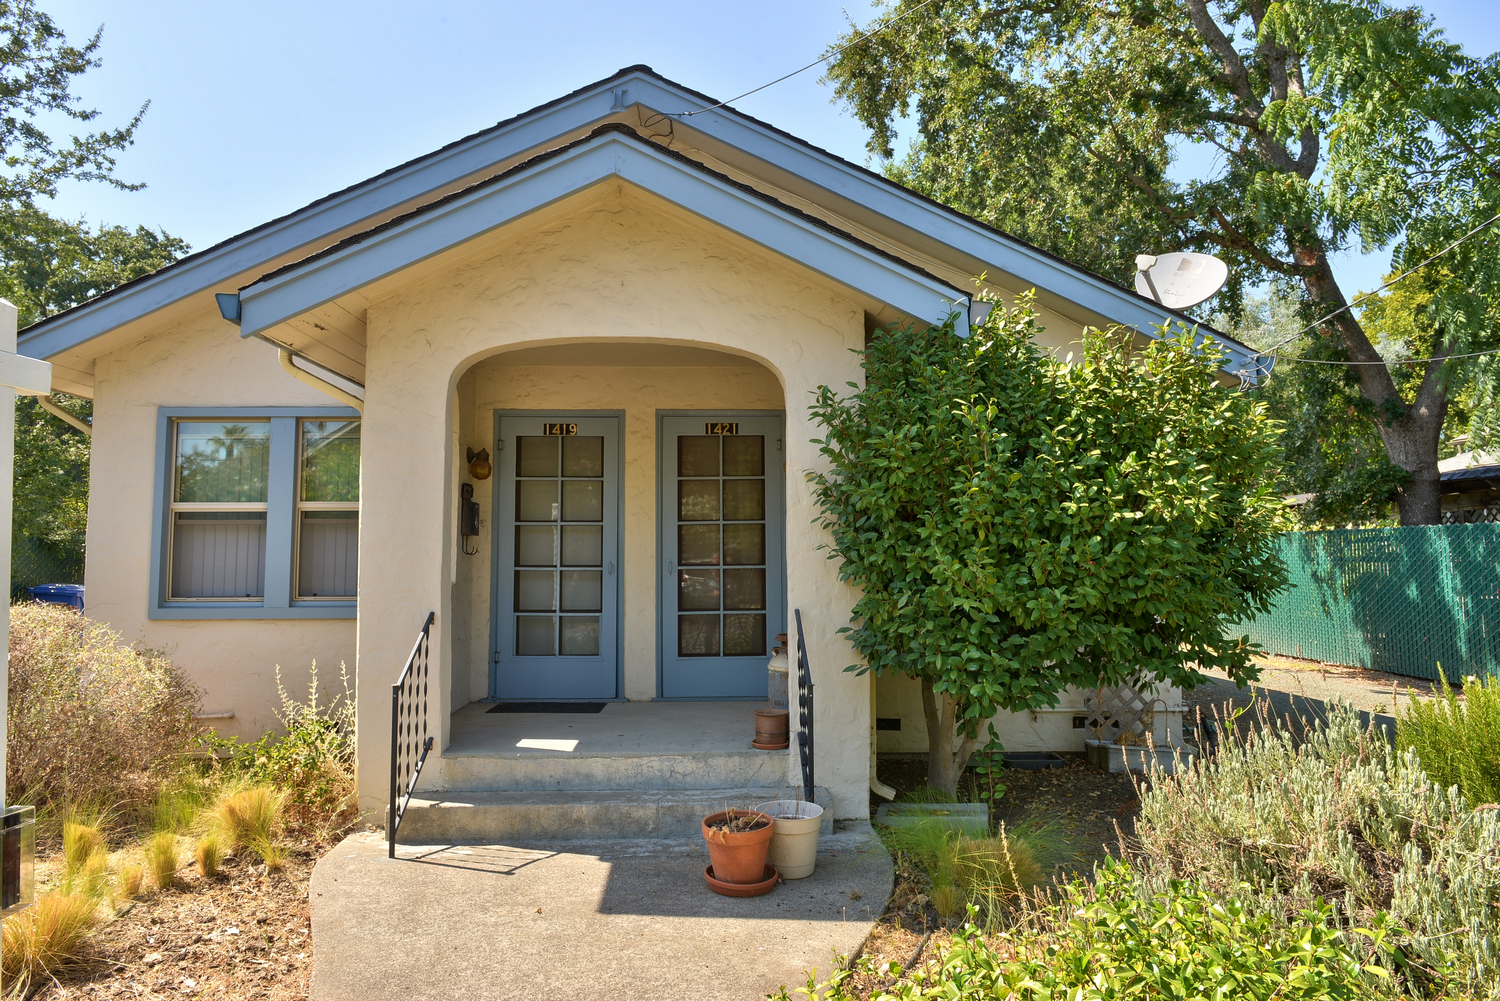 Lovely duplex in downtown residential Calistoga. This bungalow style duplex offers 2 units, 2/1. Rare opportunity to own affordable investment property in Napa Valley.